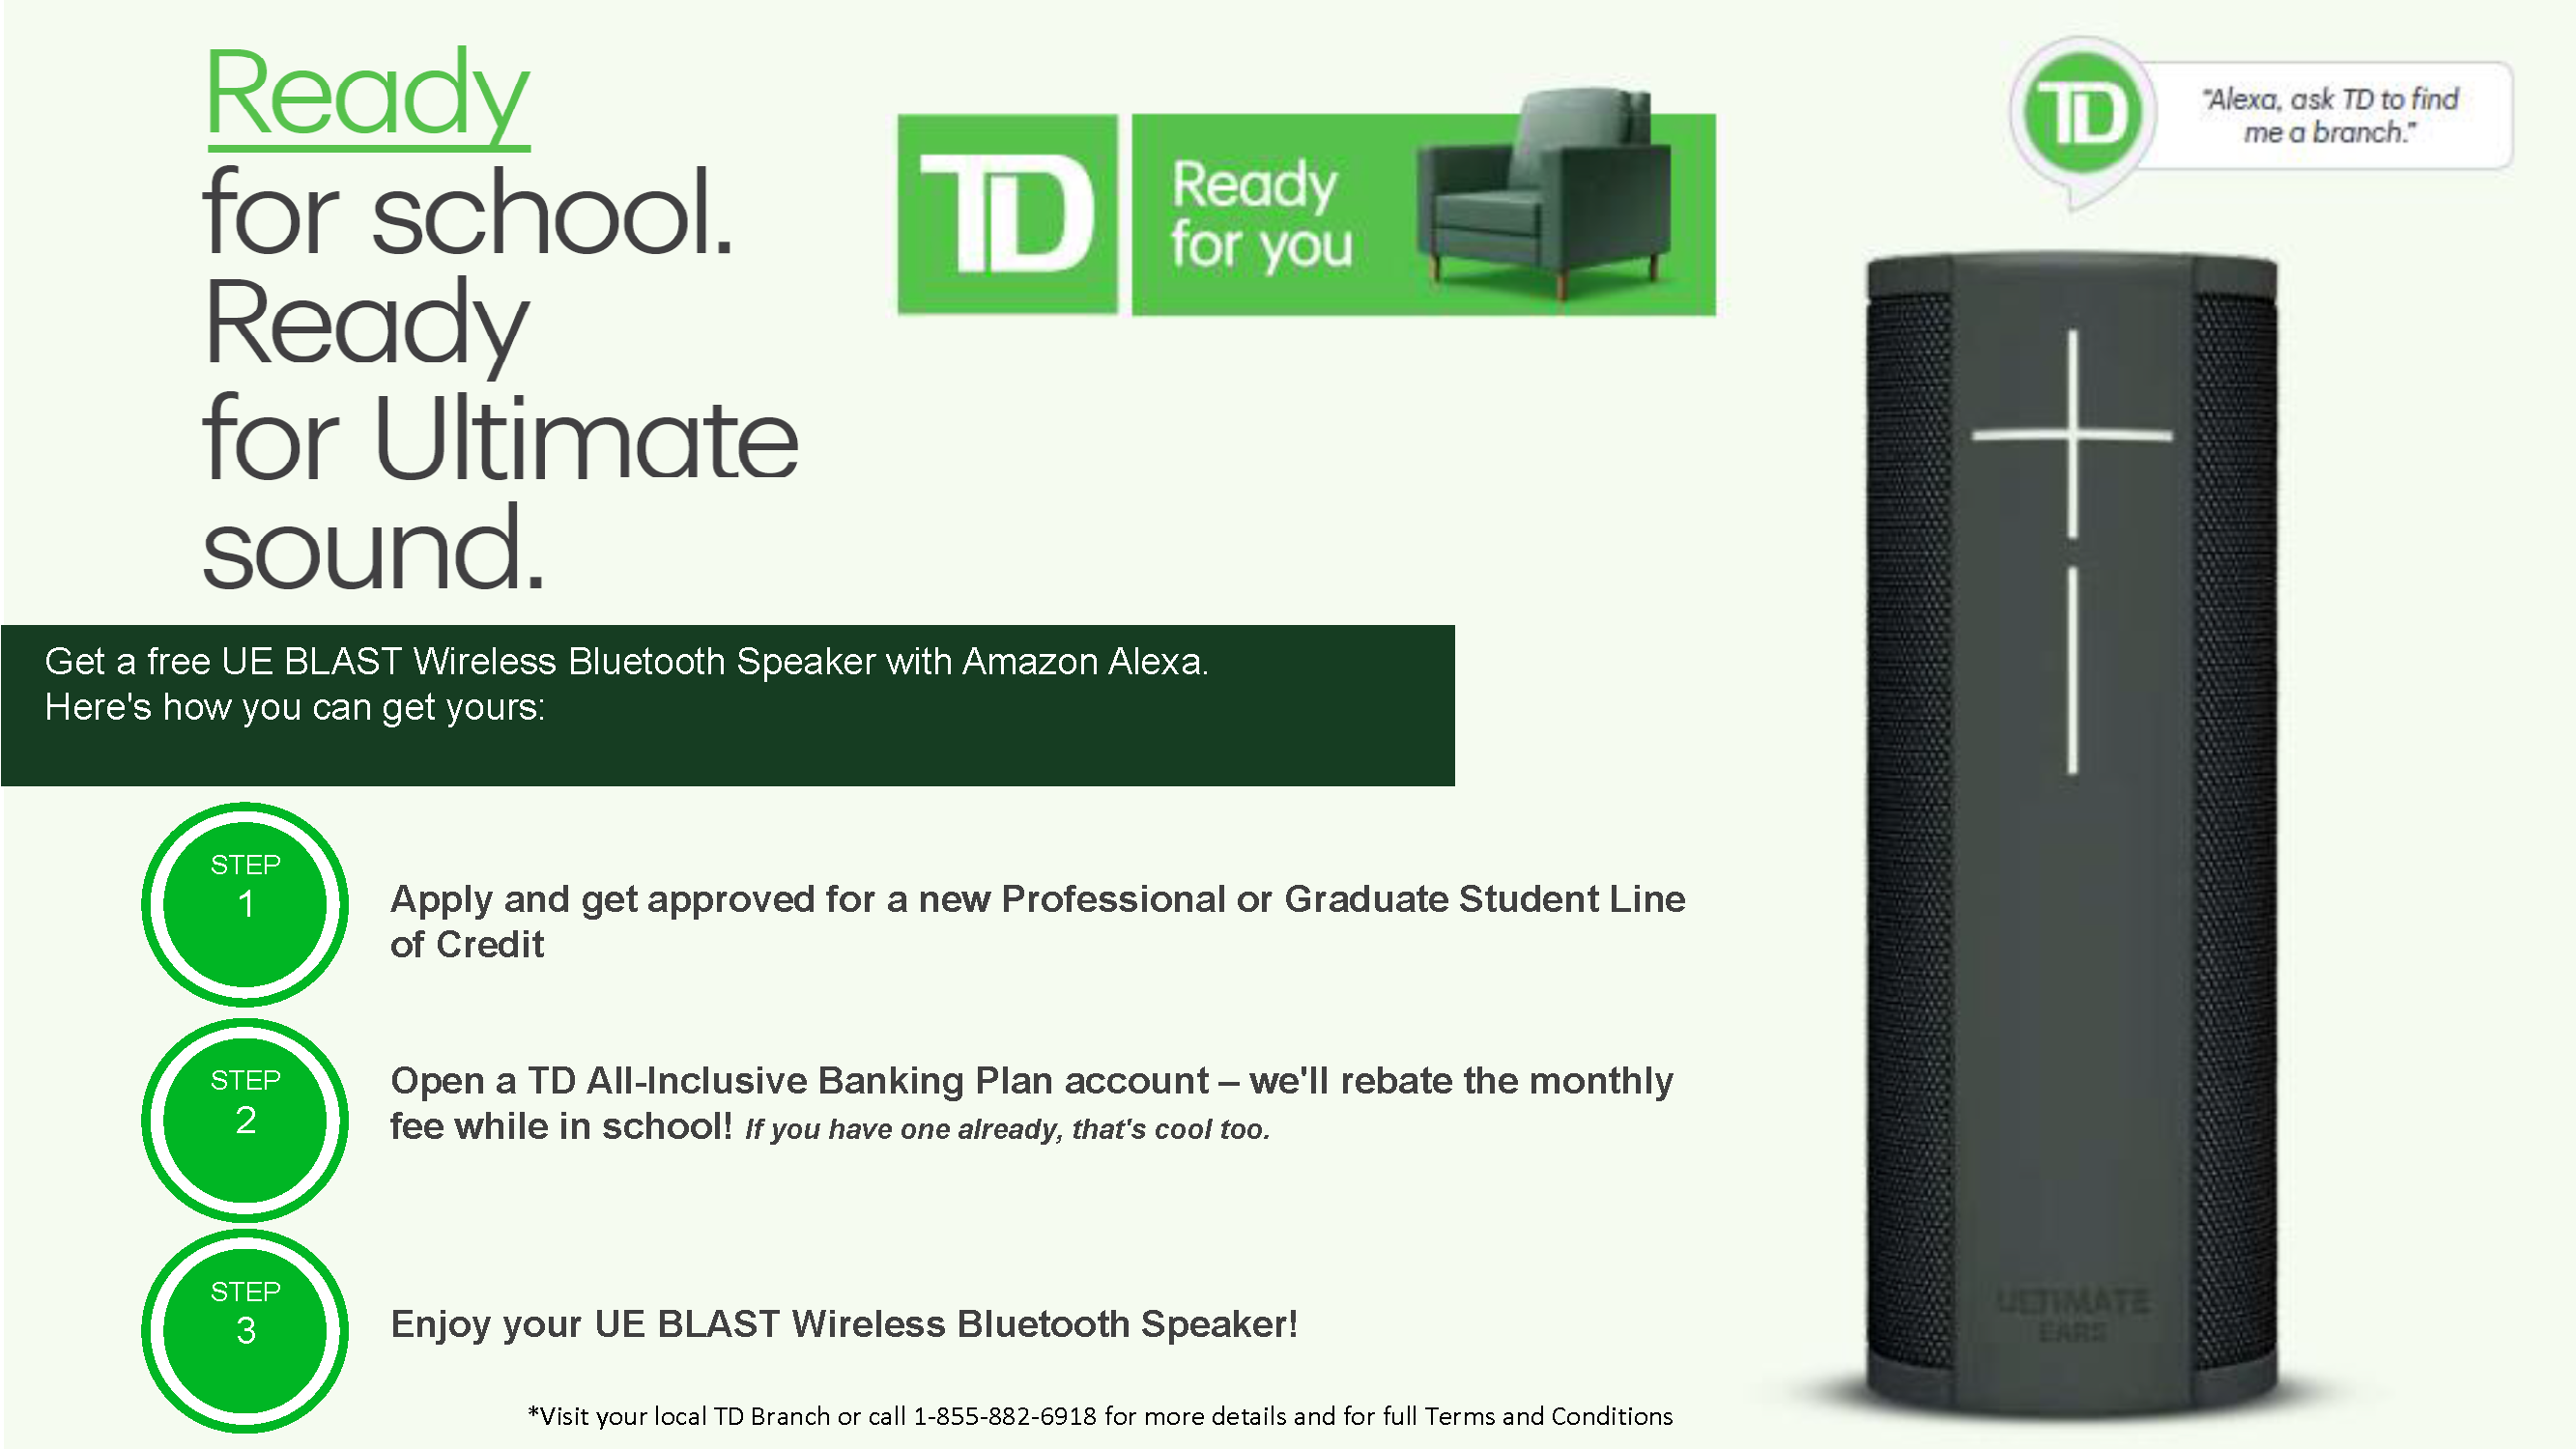 2018 TD Professional SLOC Offer